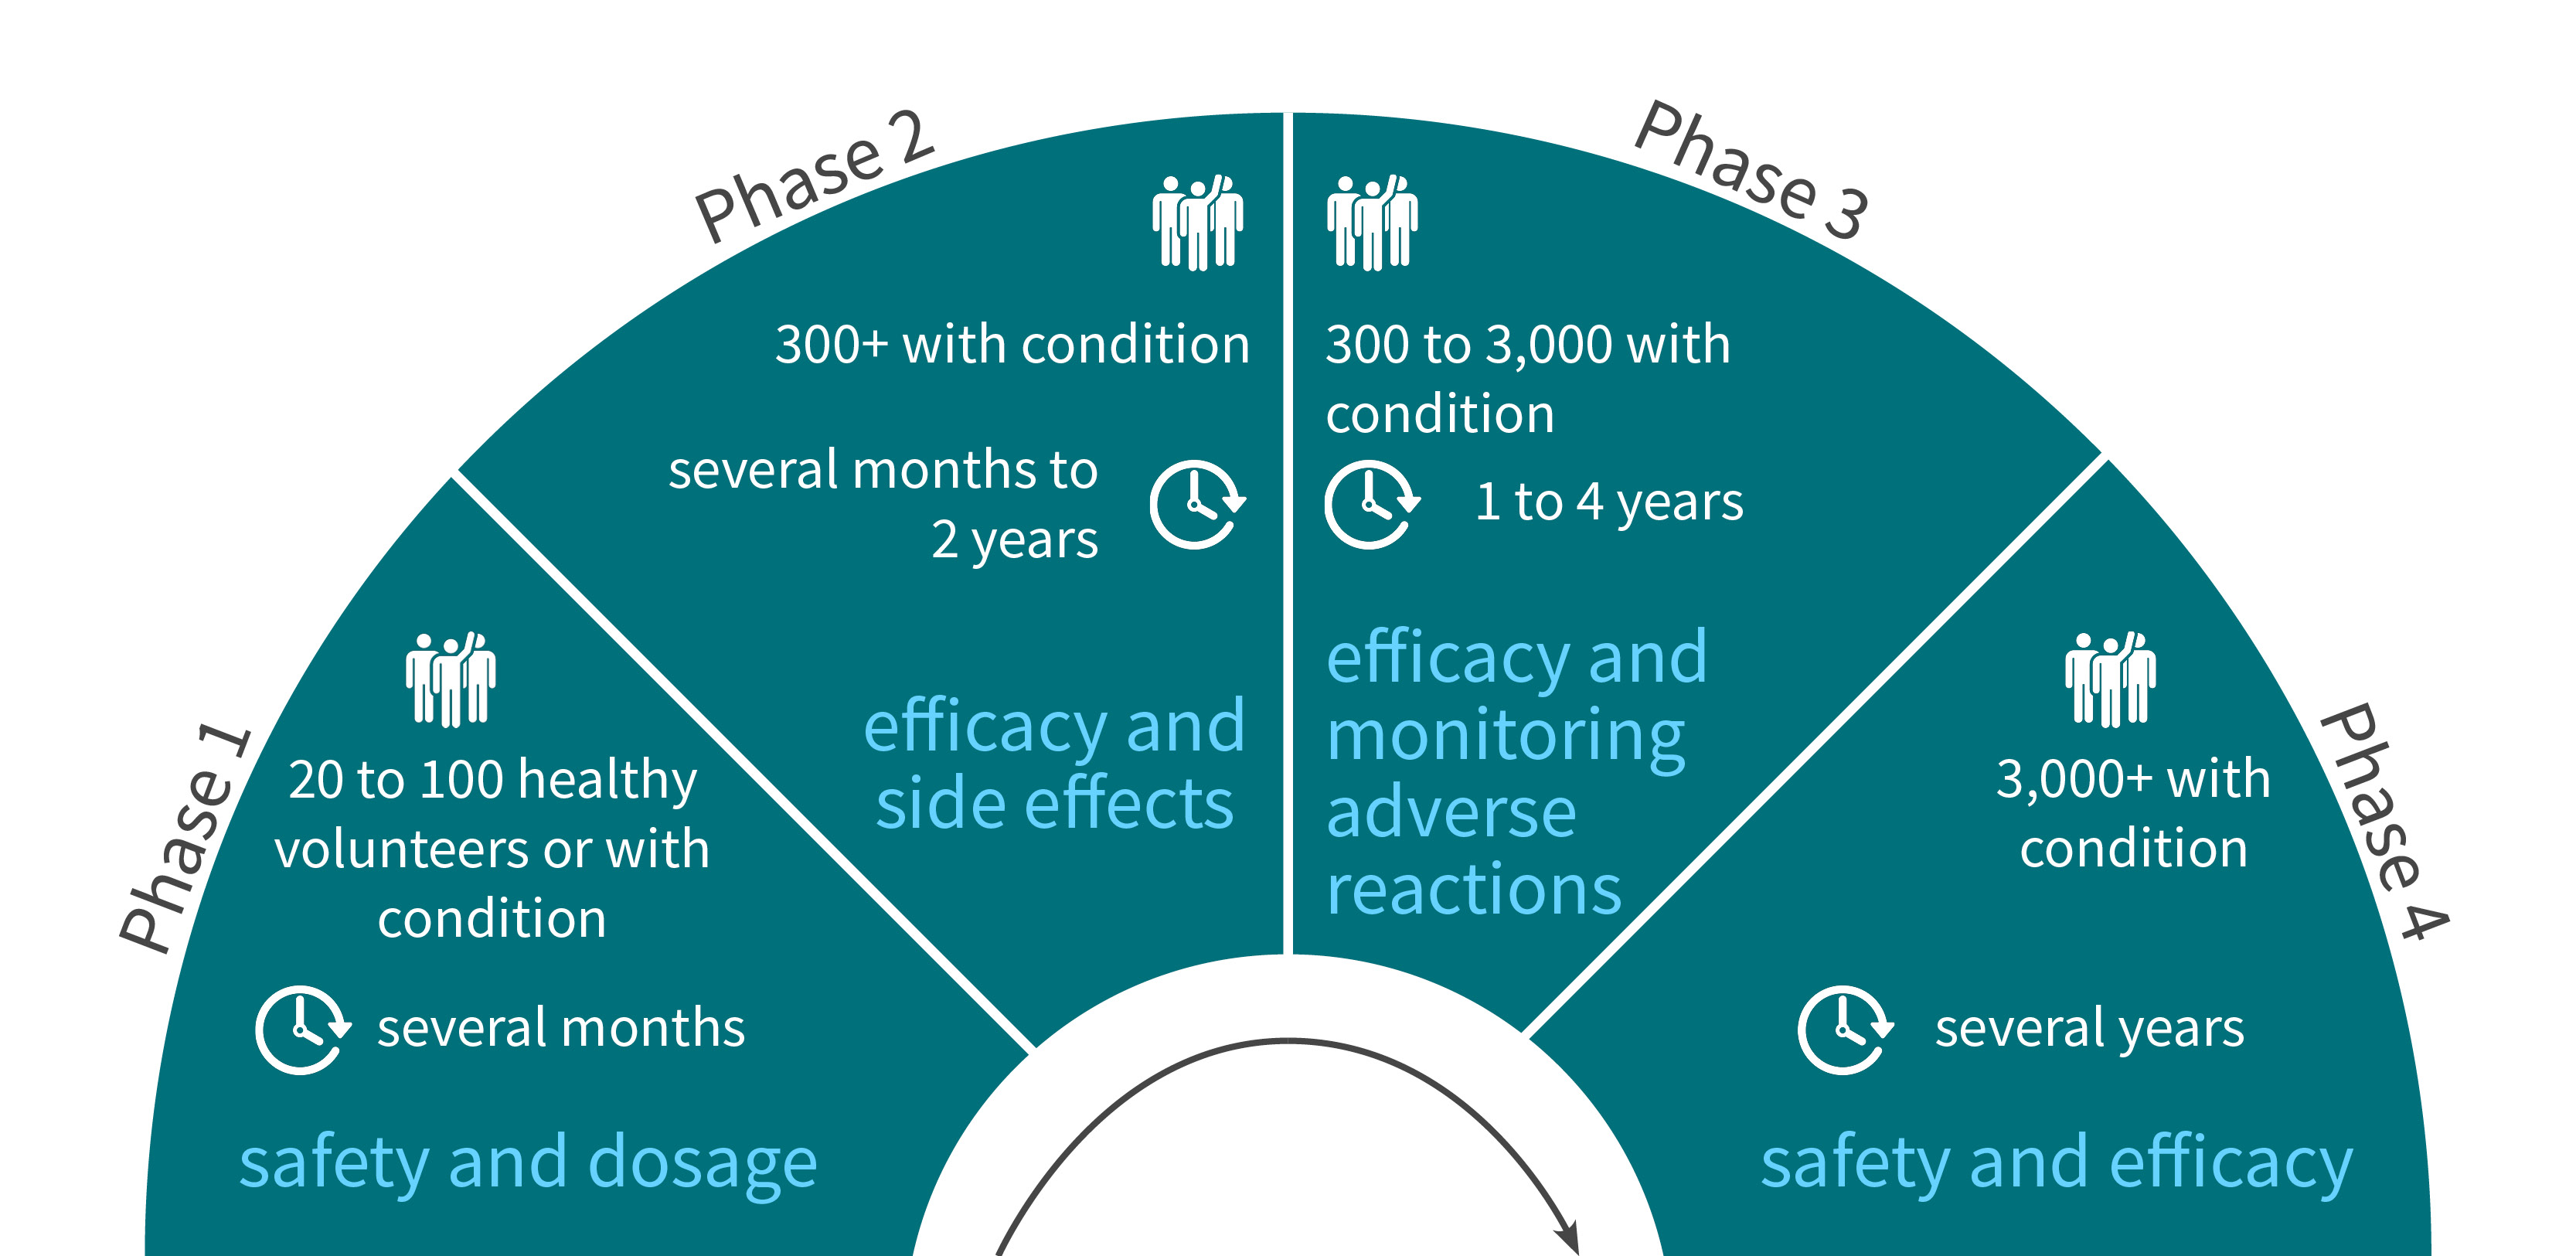 Scheme showing the 4 phases of clinical trials that are required for FDA approval